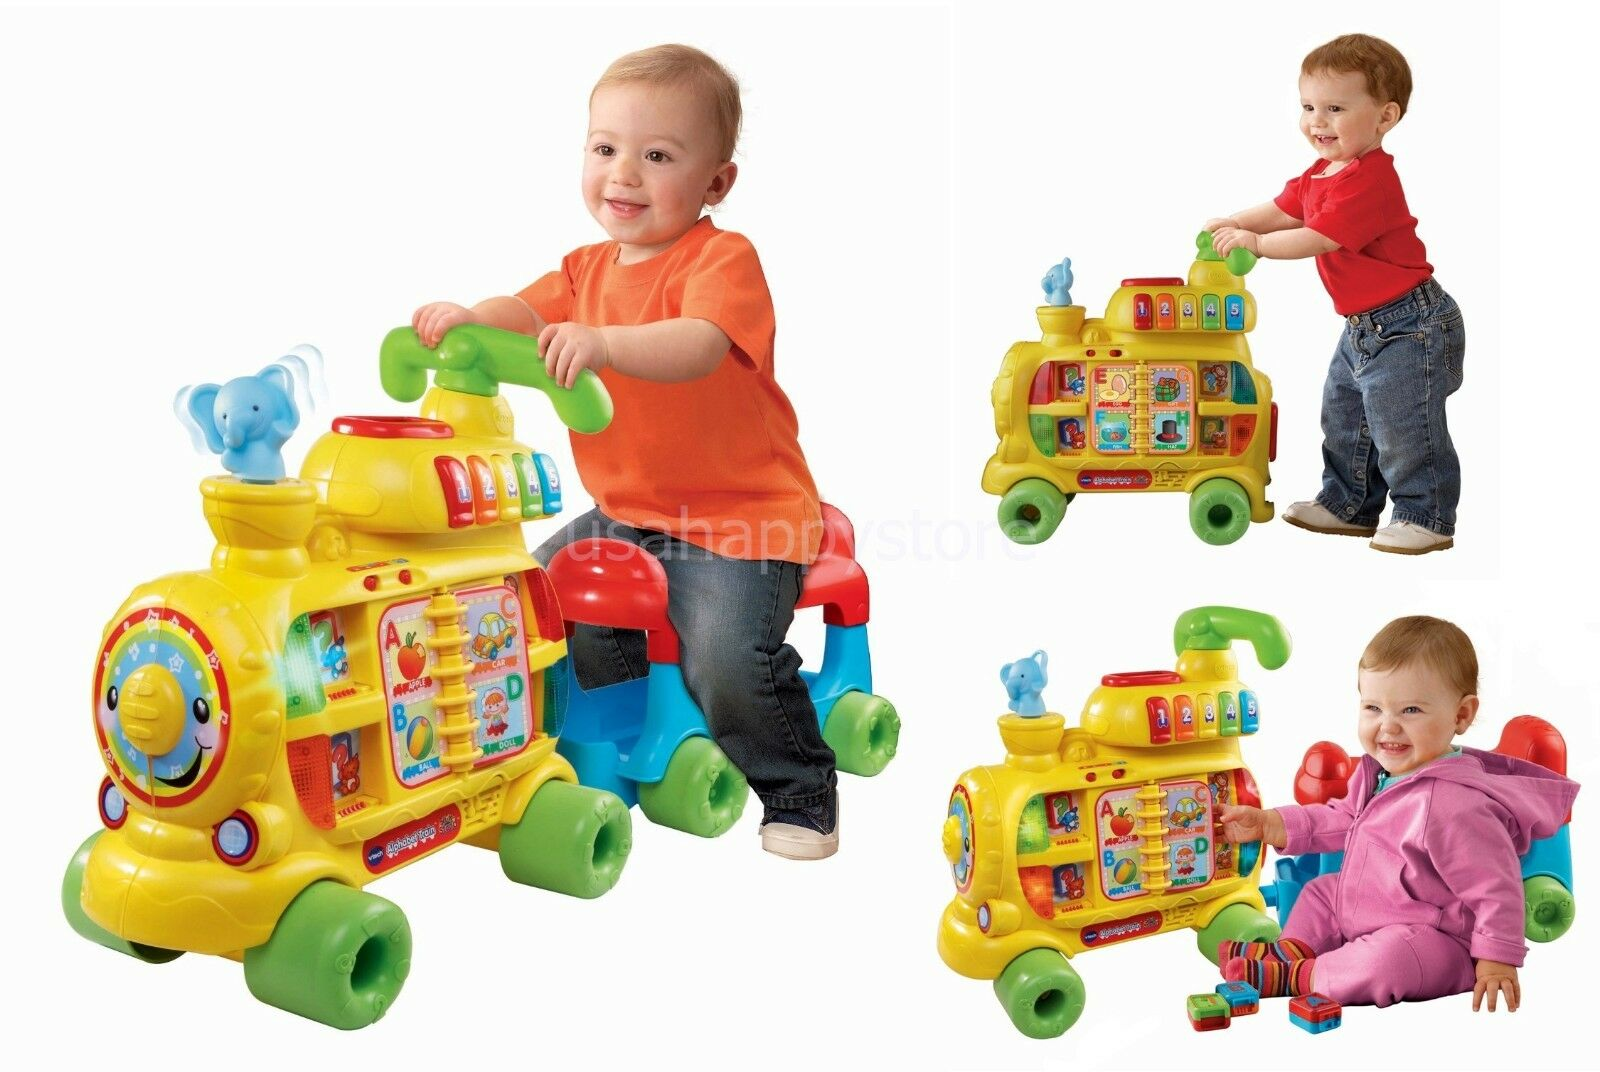 Alphabet Learning Toys : Vtech alphabet train kids toddler ride on interactive learning